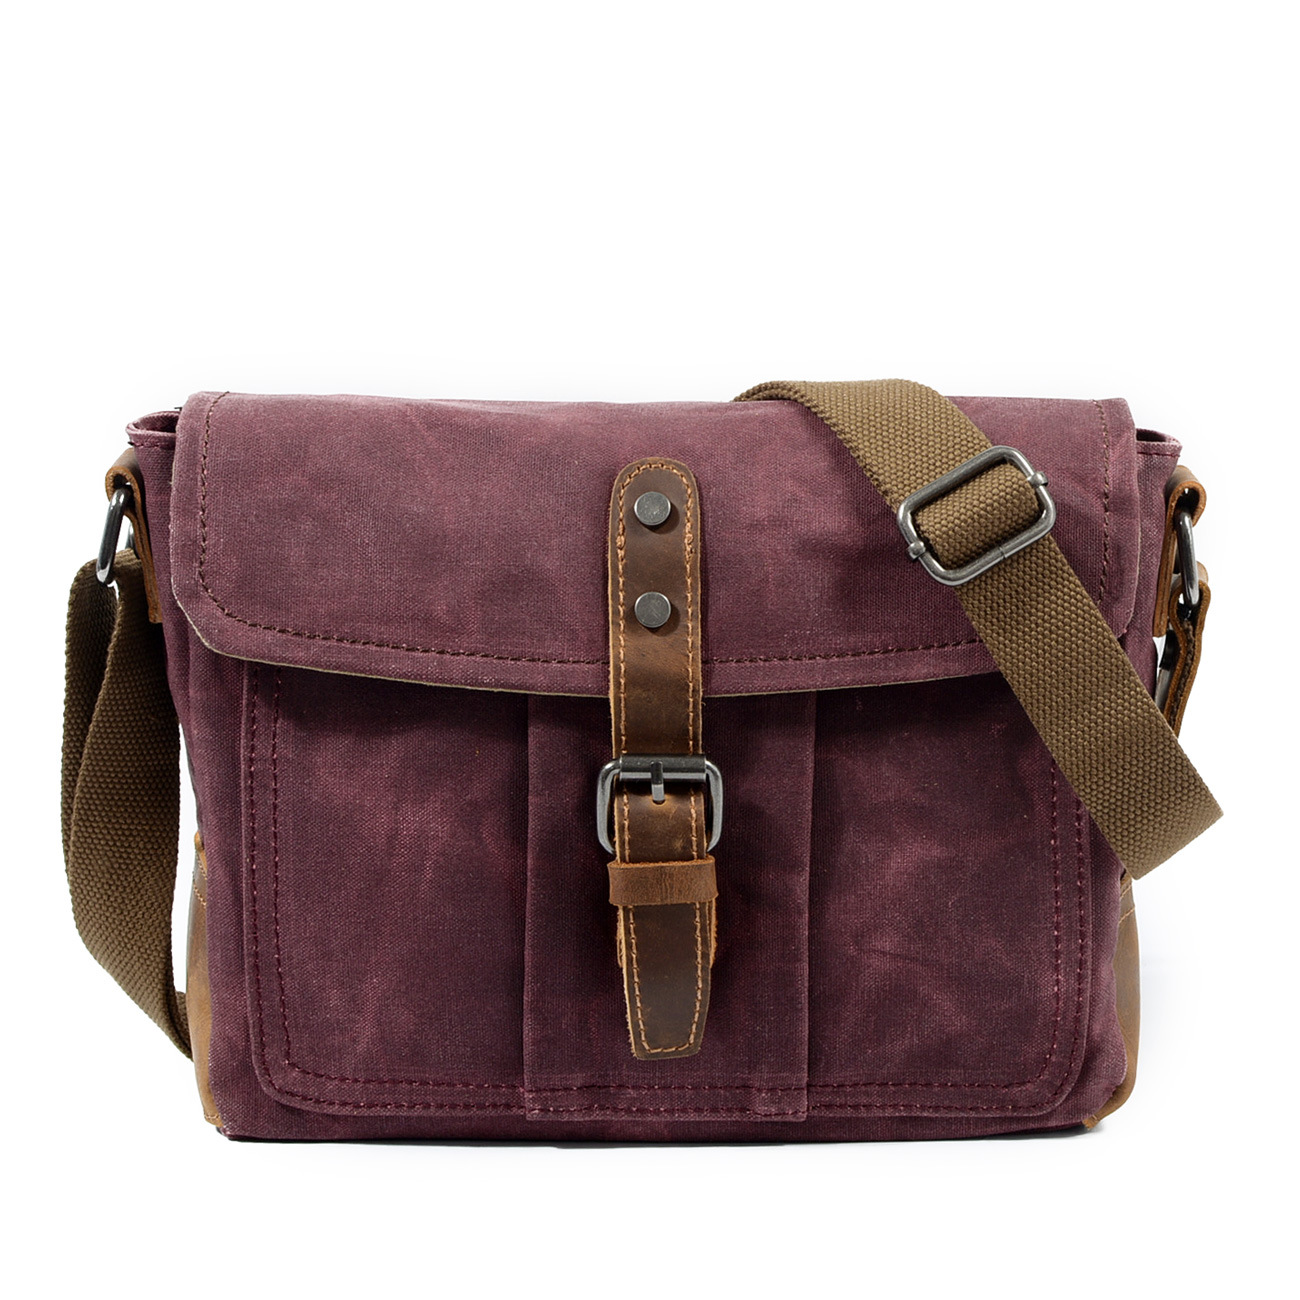 56d4dbbe6737 MCO 2018 Vintage Waxed Canvas Messenger Bag For Men Military Male Travel  Crossbody Bag Waterproof Basic Business Shoulder Bags-in Crossbody Bags  from ...